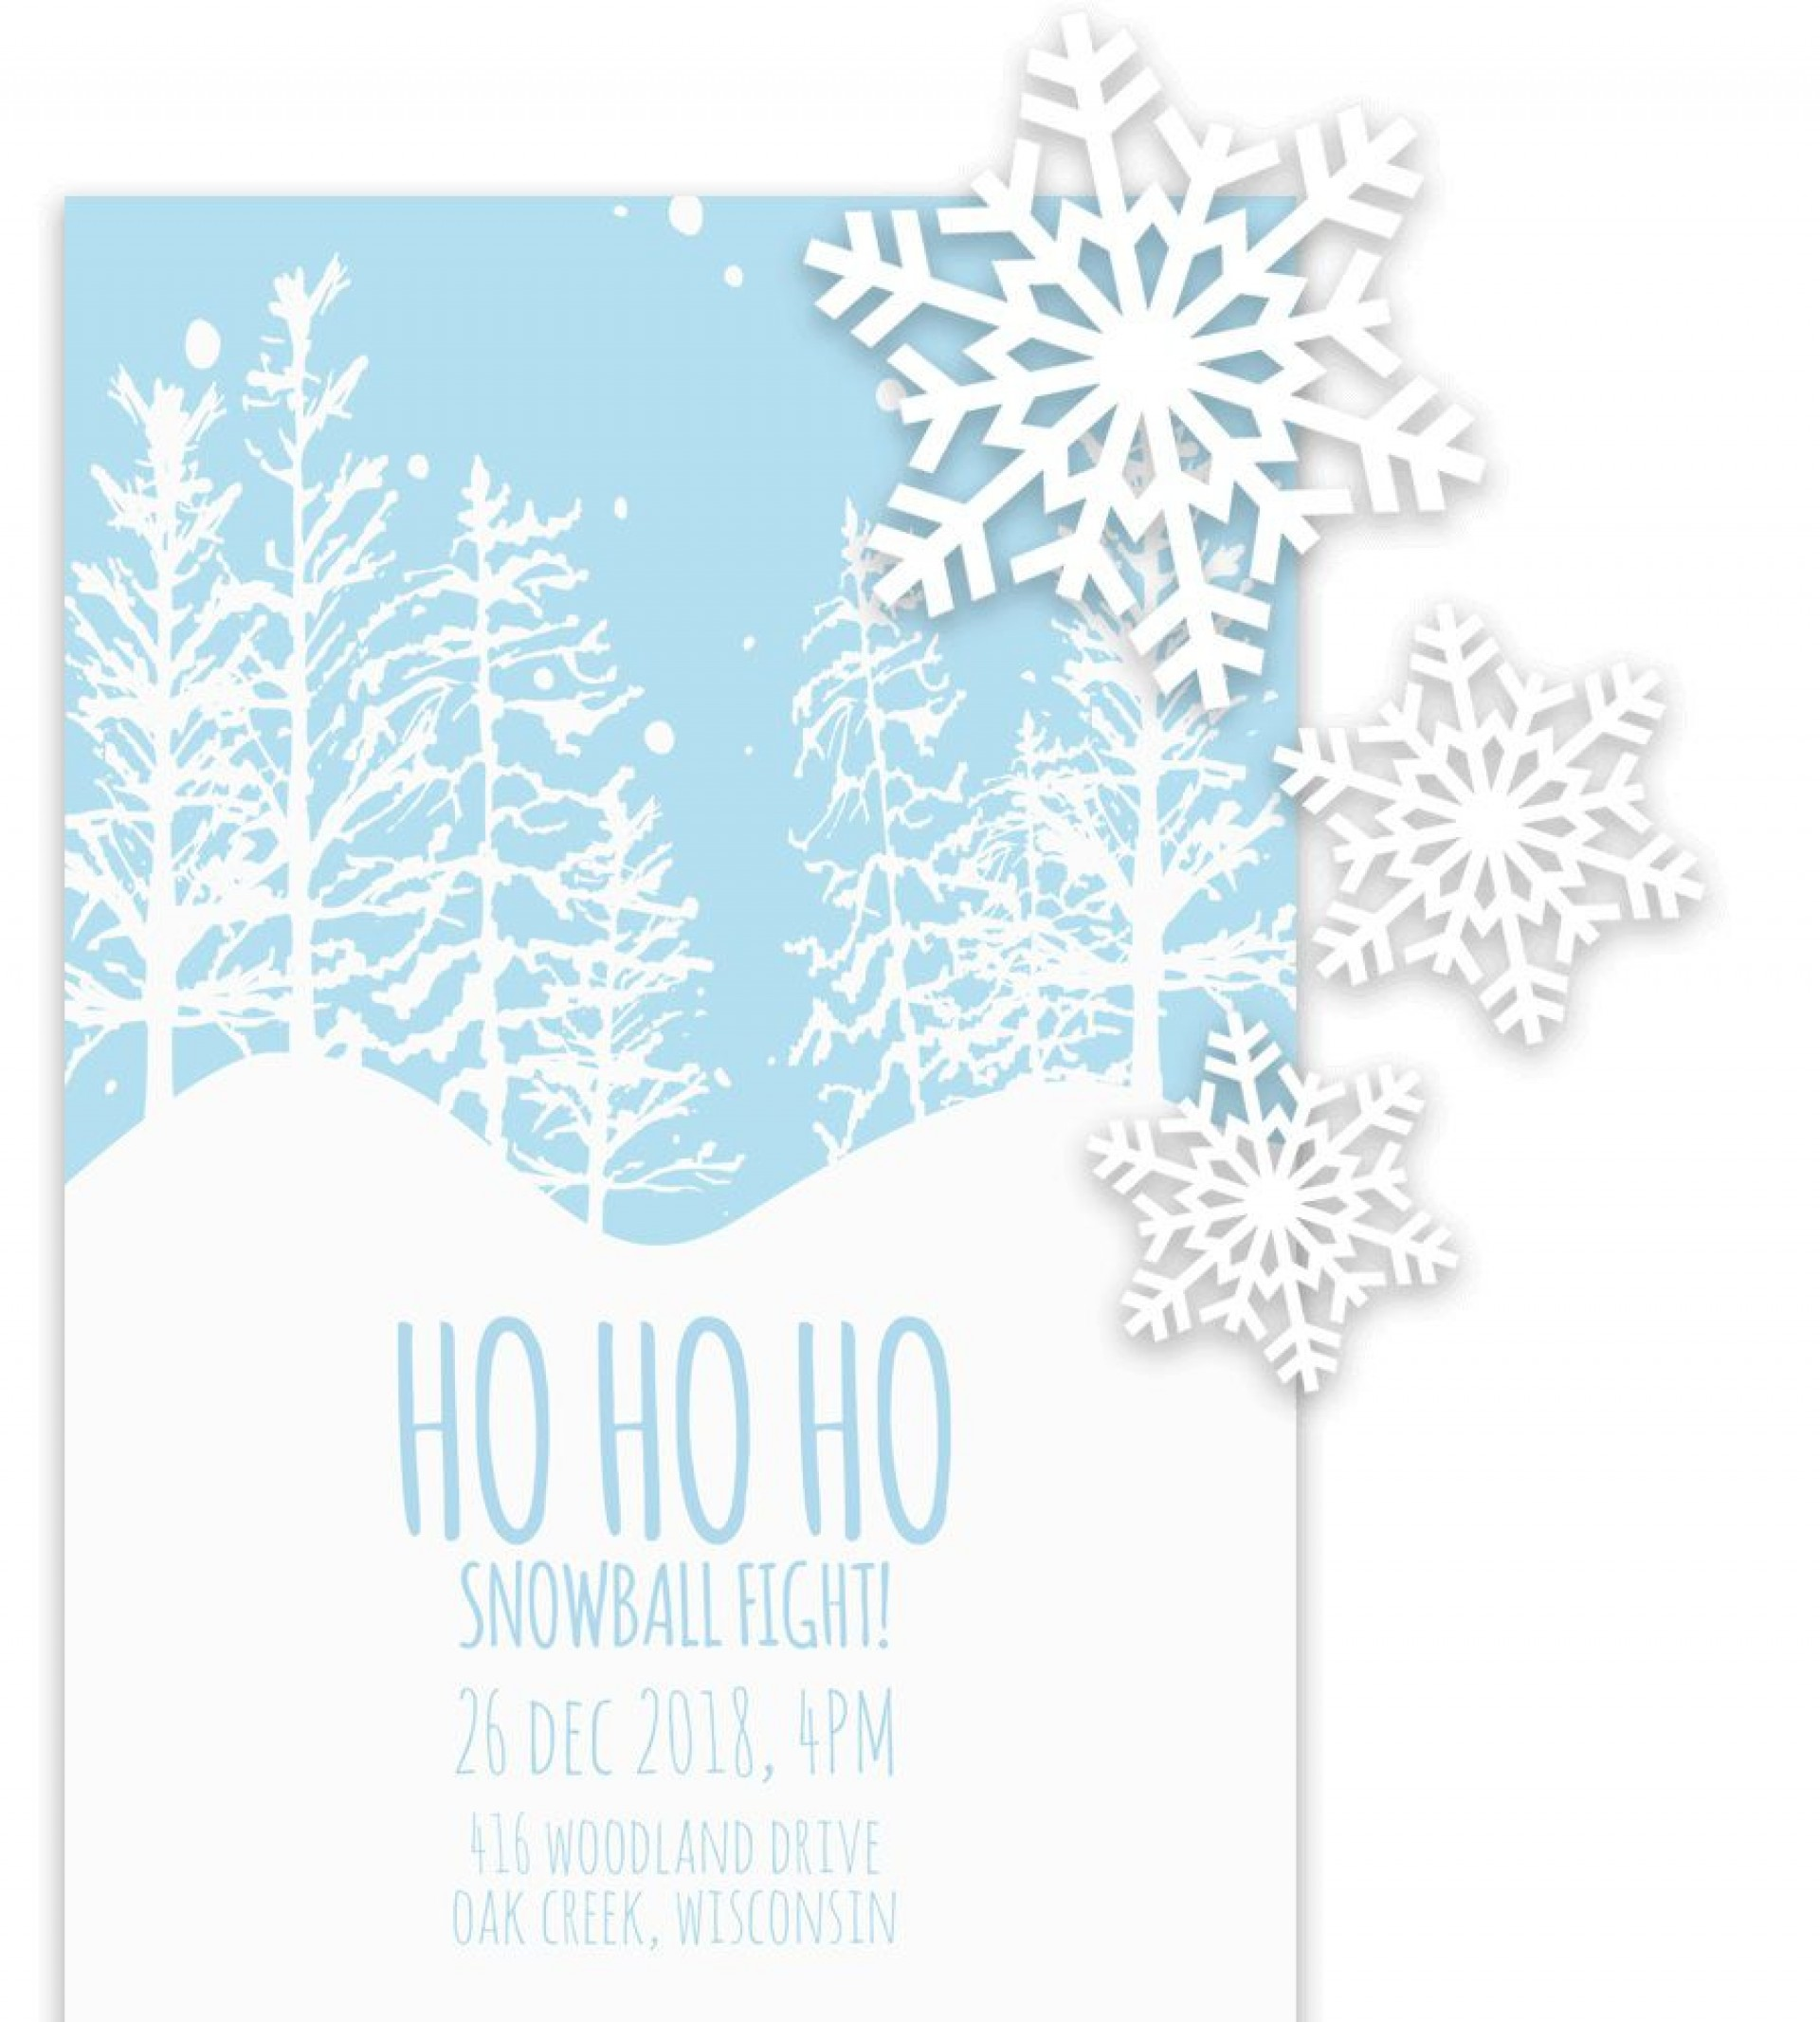 004 Unusual Free Holiday Party Invitation Template Image  Templates Printable Downloadable Christma Online1920